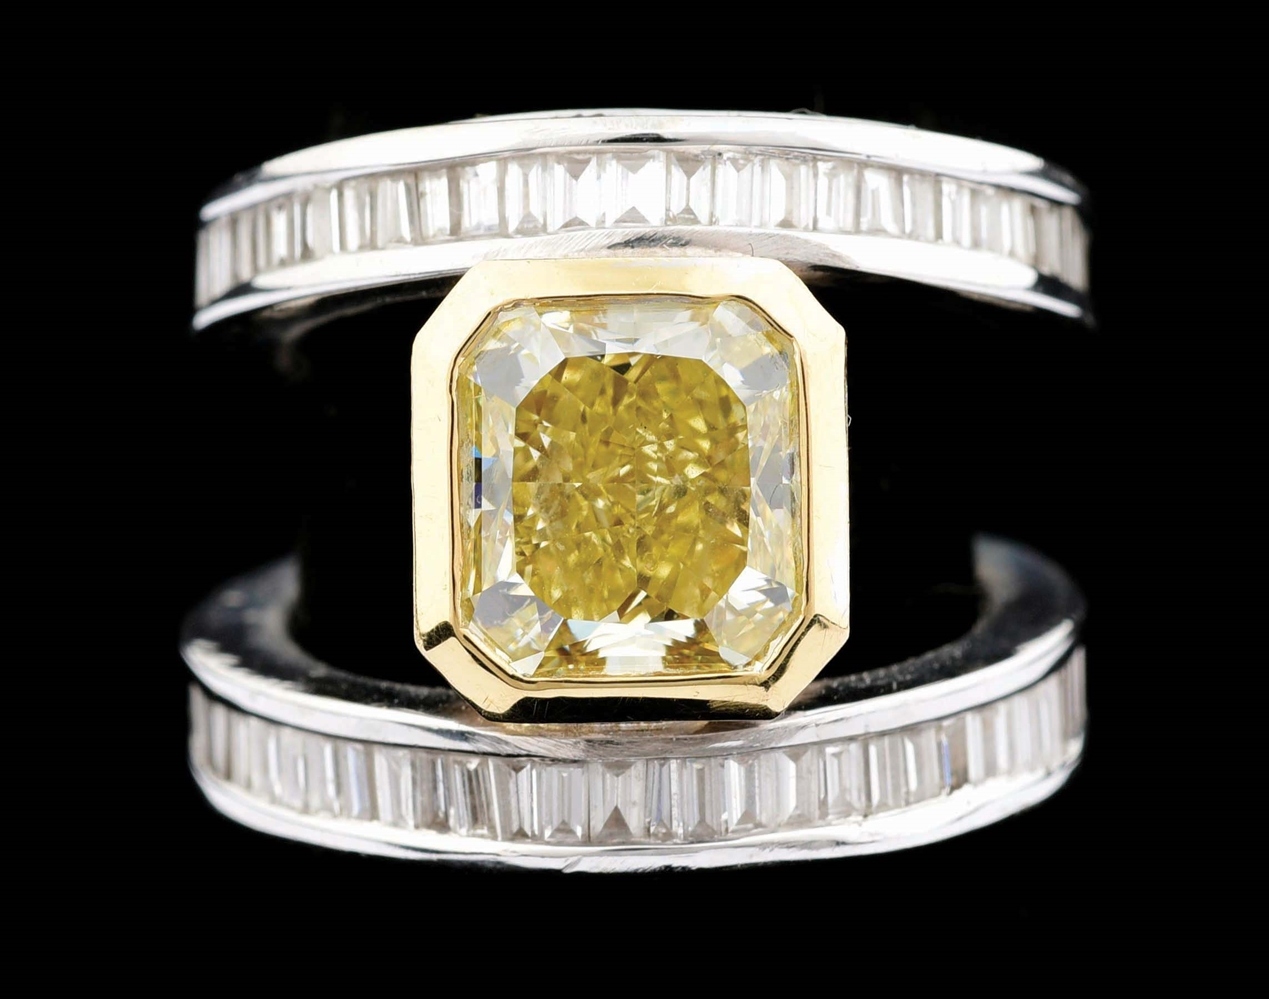 18K WHITE GOLD 4CT FANCY YELLOW DIAMOND RING WITH GIA REPORT AND APPRAISAL.